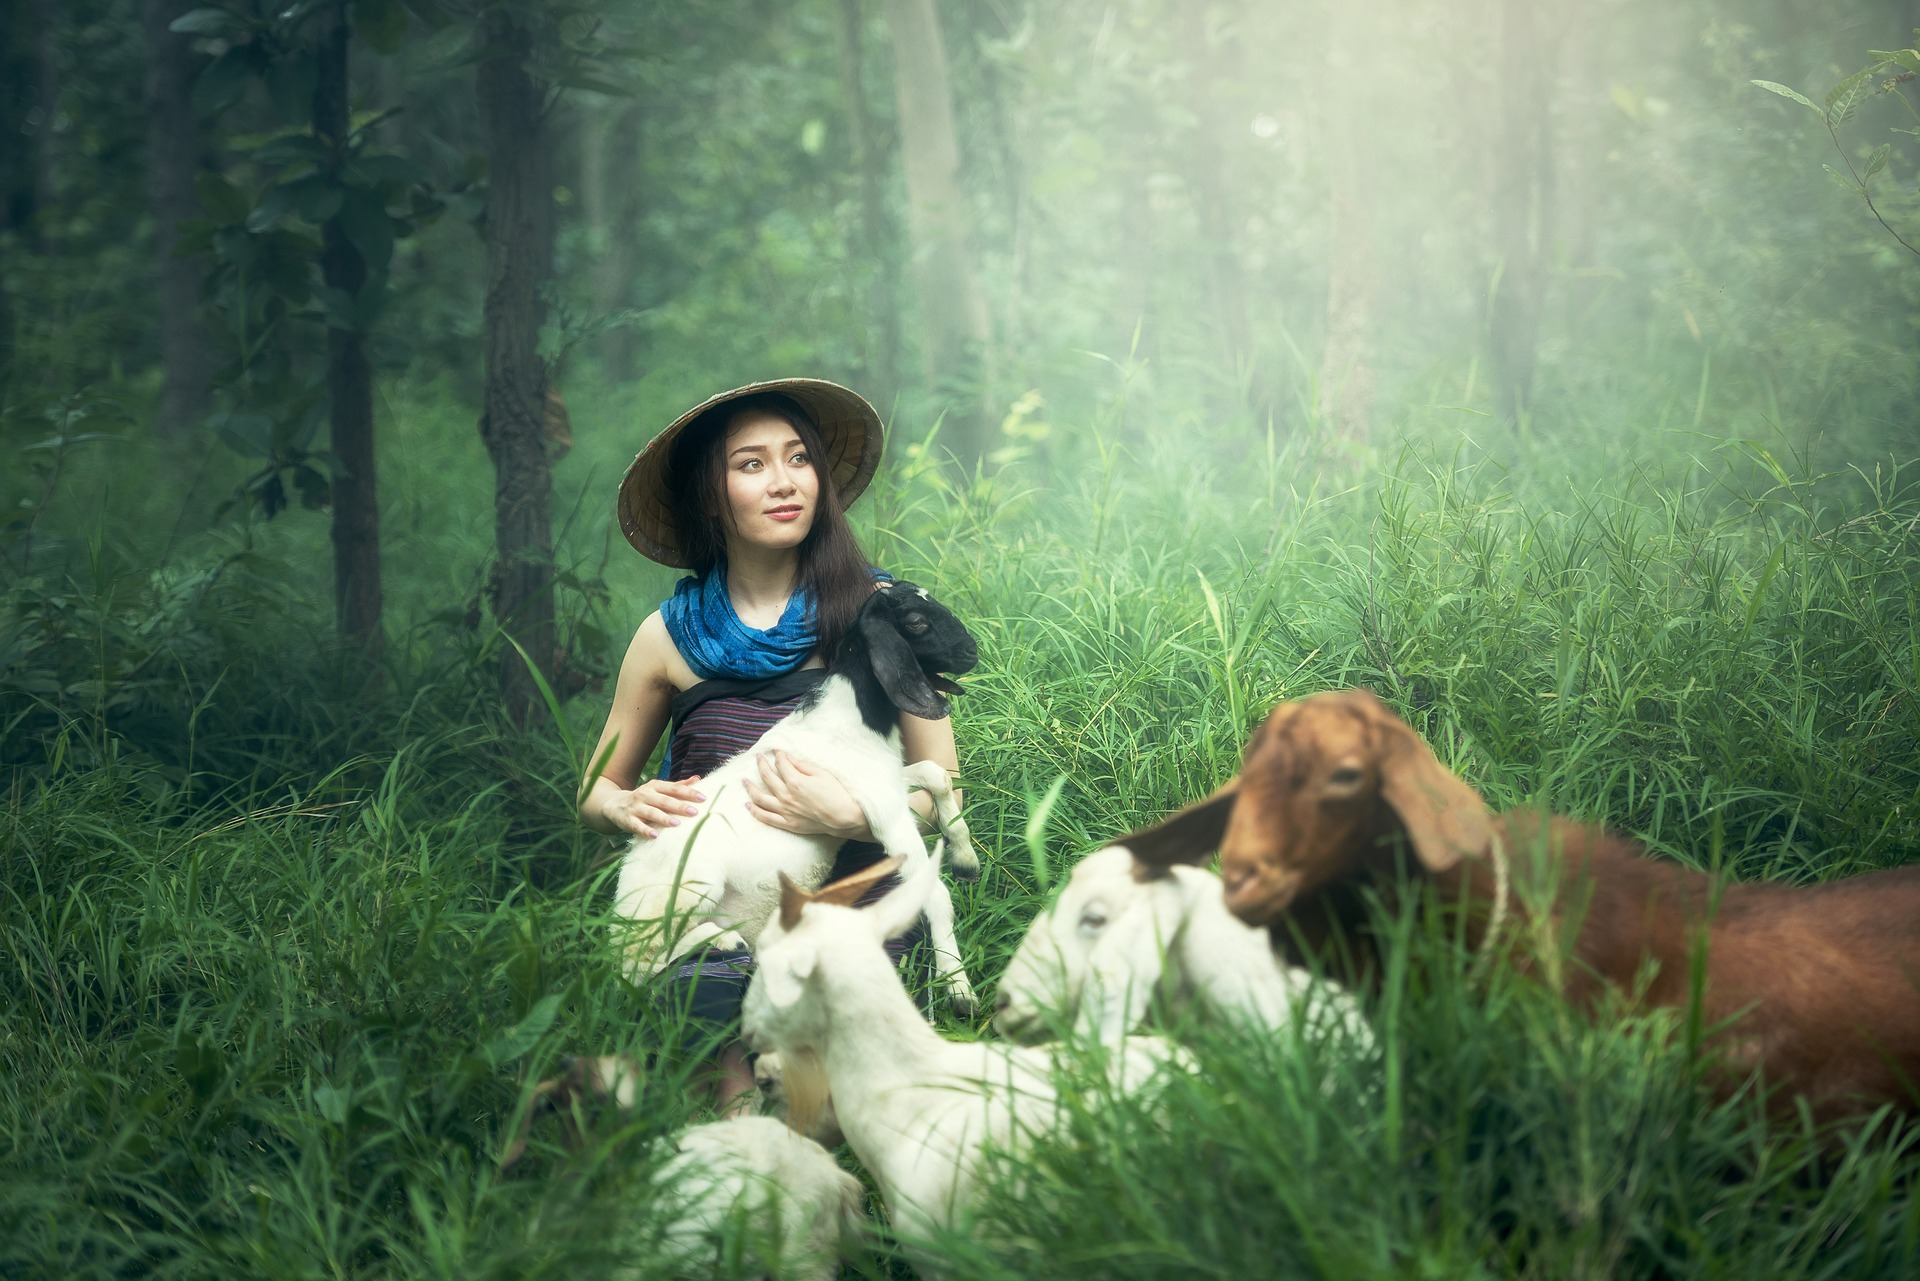 Portrait with the Goats, Animal, Girl, Goat, Green, HQ Photo